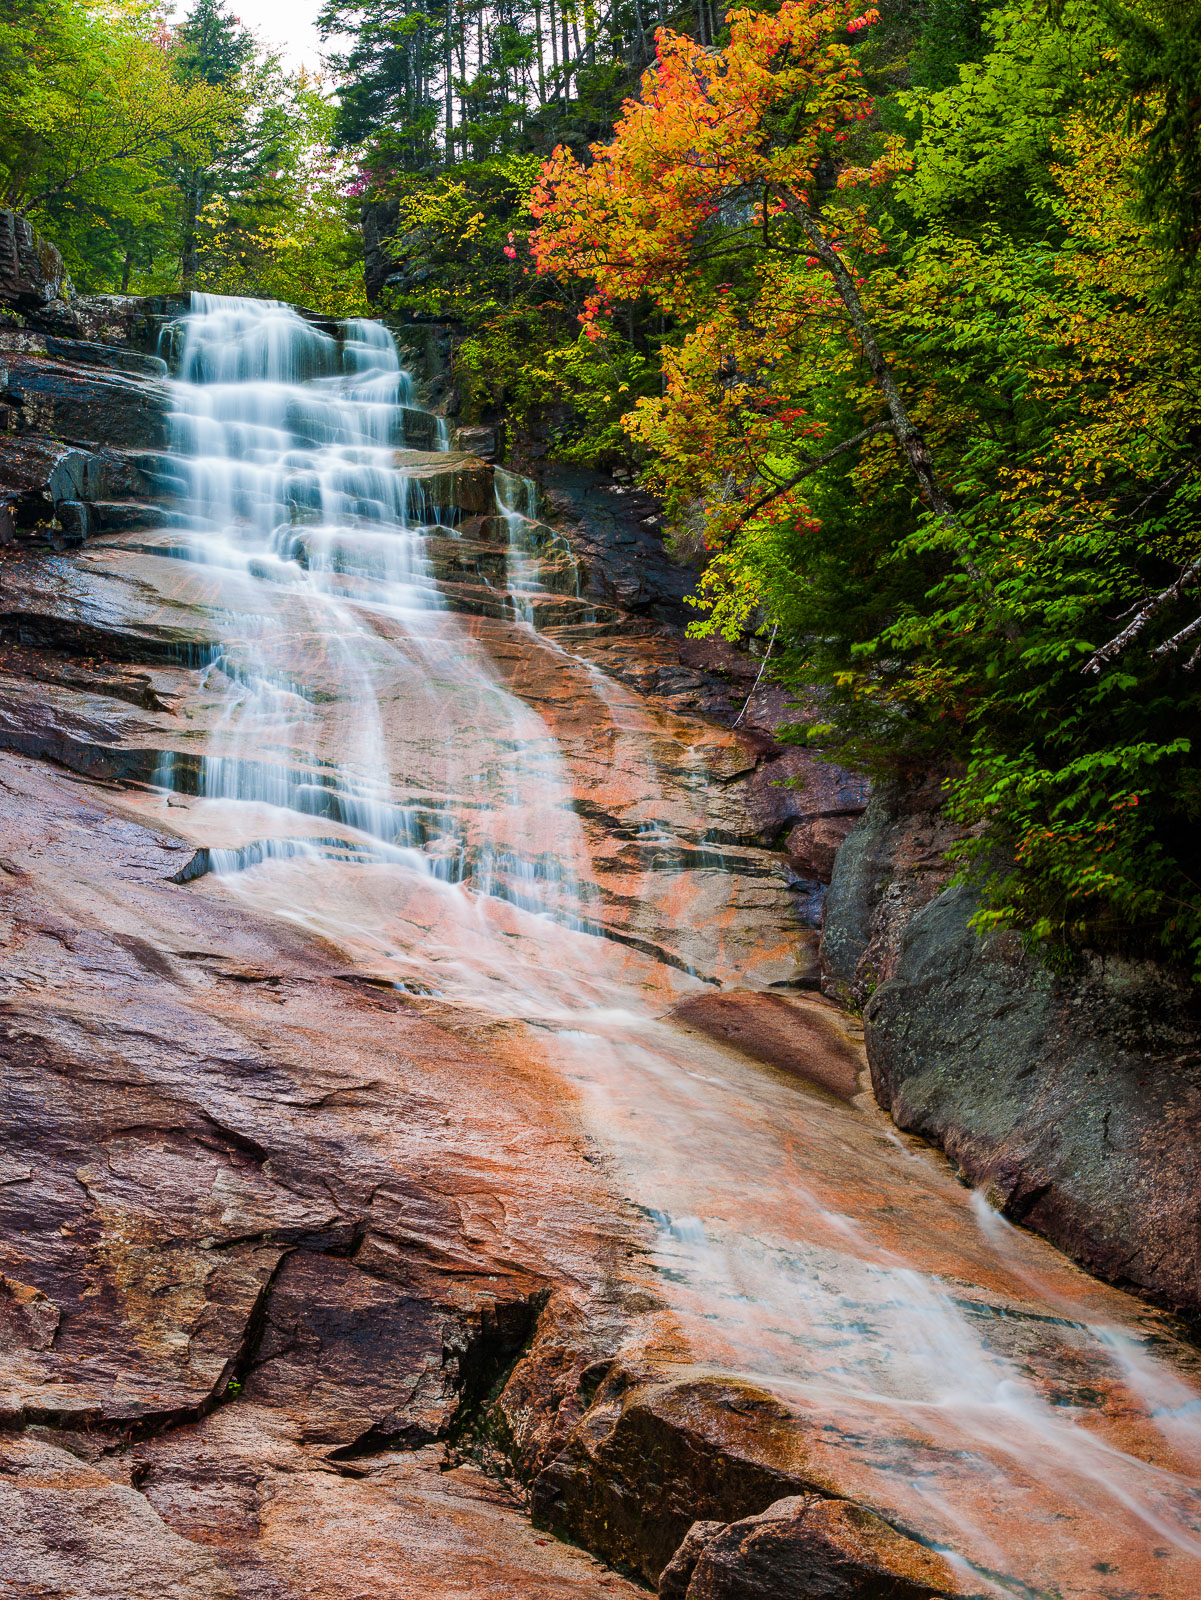 Ripley Falls,Autumn,Crawford Notch,Landscape,New England,New Hampshire,Ripley Falls,Vertical,Waterfall,White Mountains, photo